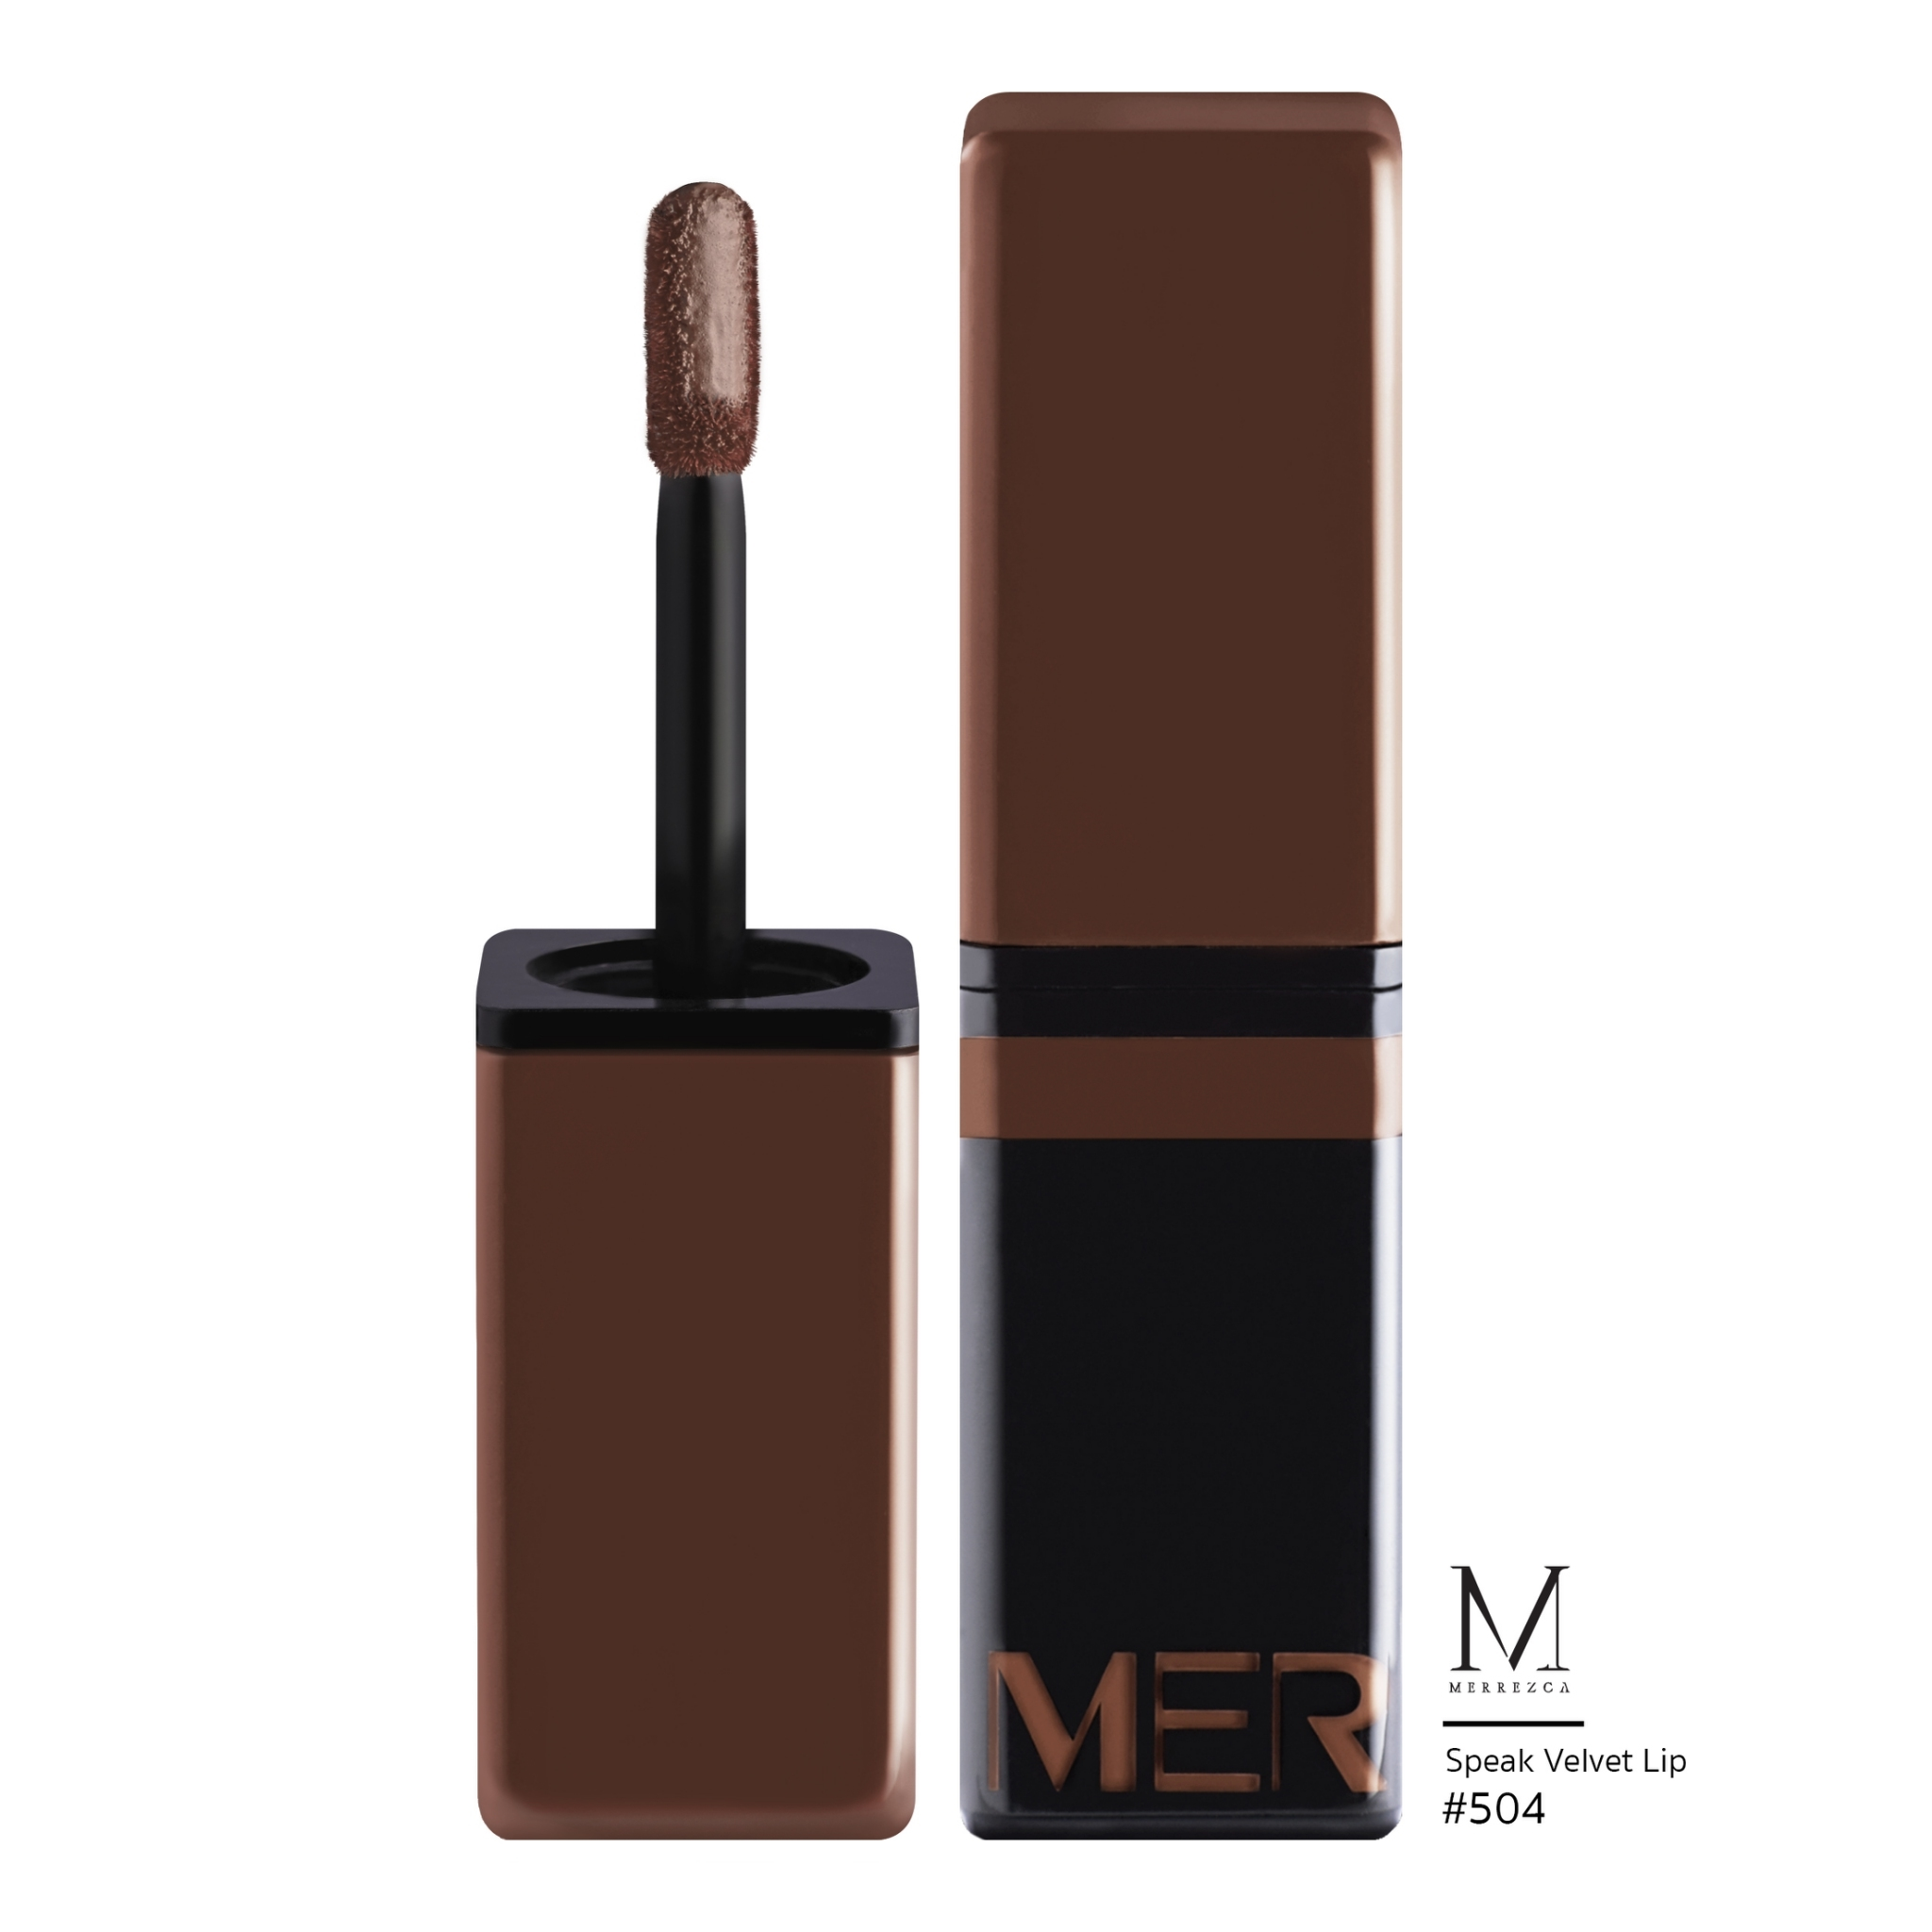 Merrez'ca Speak Velvet Lip # 504